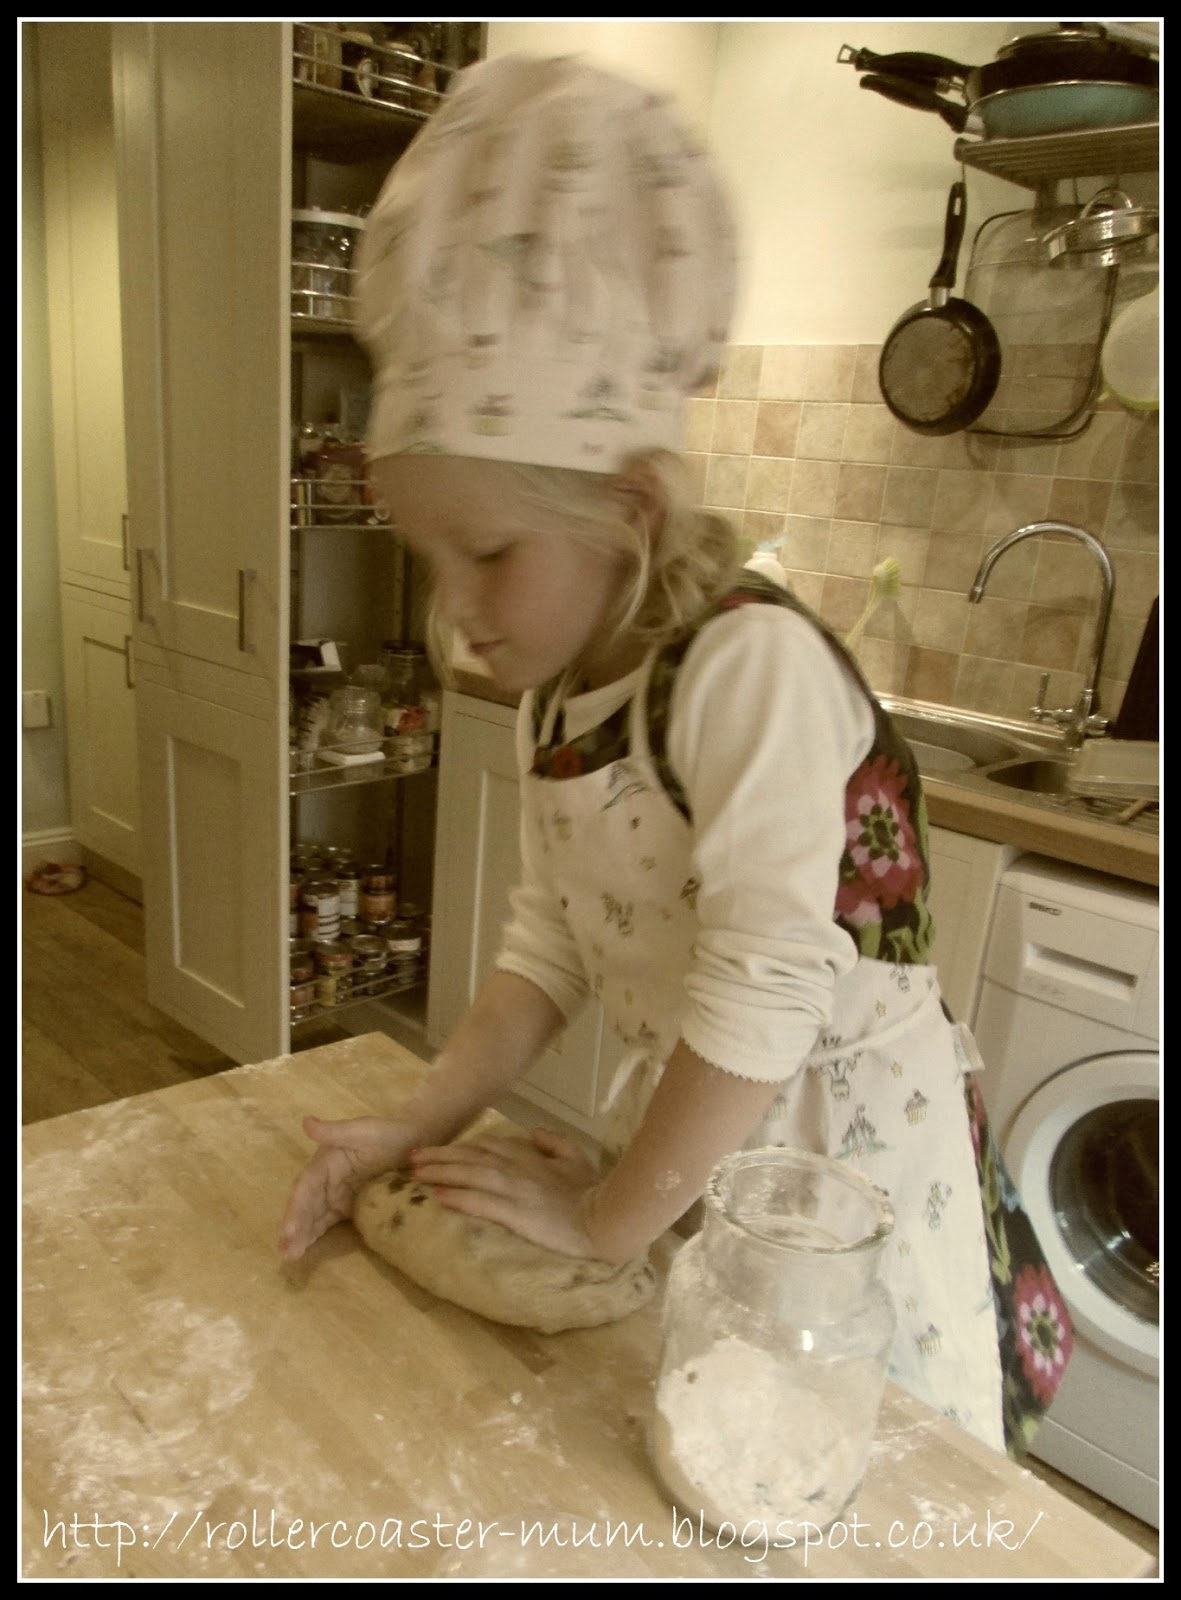 kneading the dough for iced buns